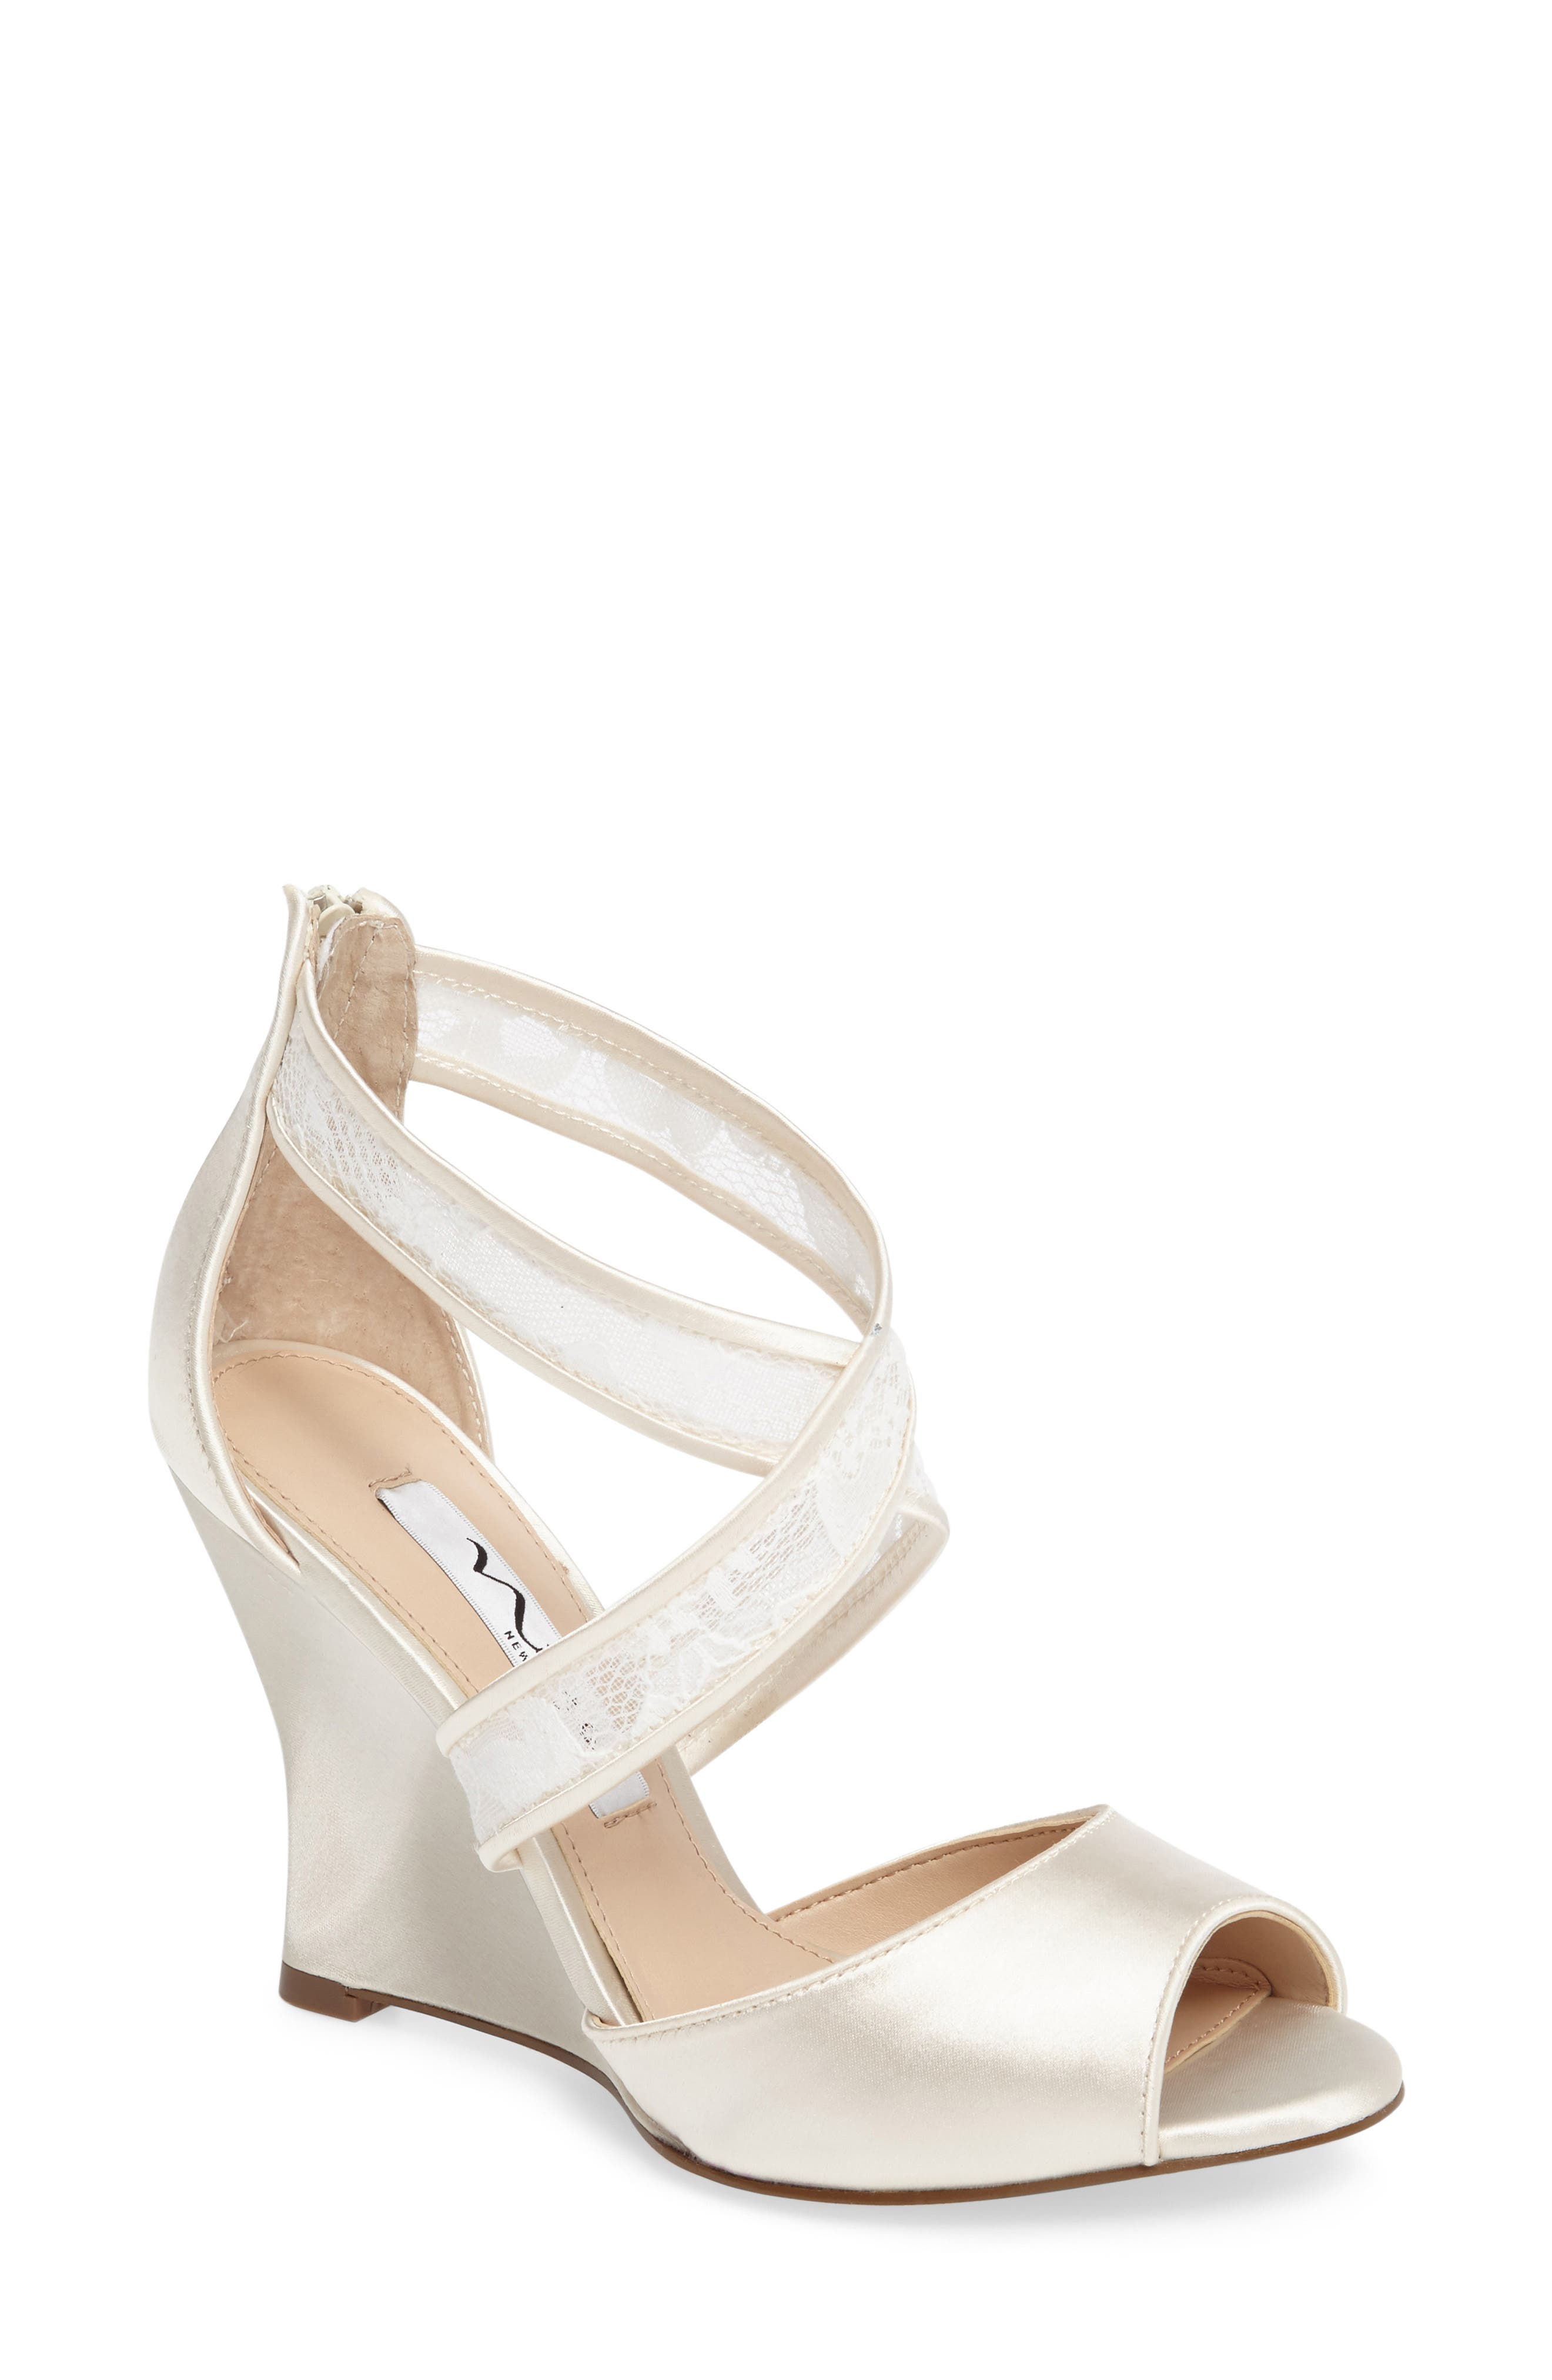 NINA, Elyana Strappy Wedge Sandal, Main thumbnail 1, color, IVORY SATIN